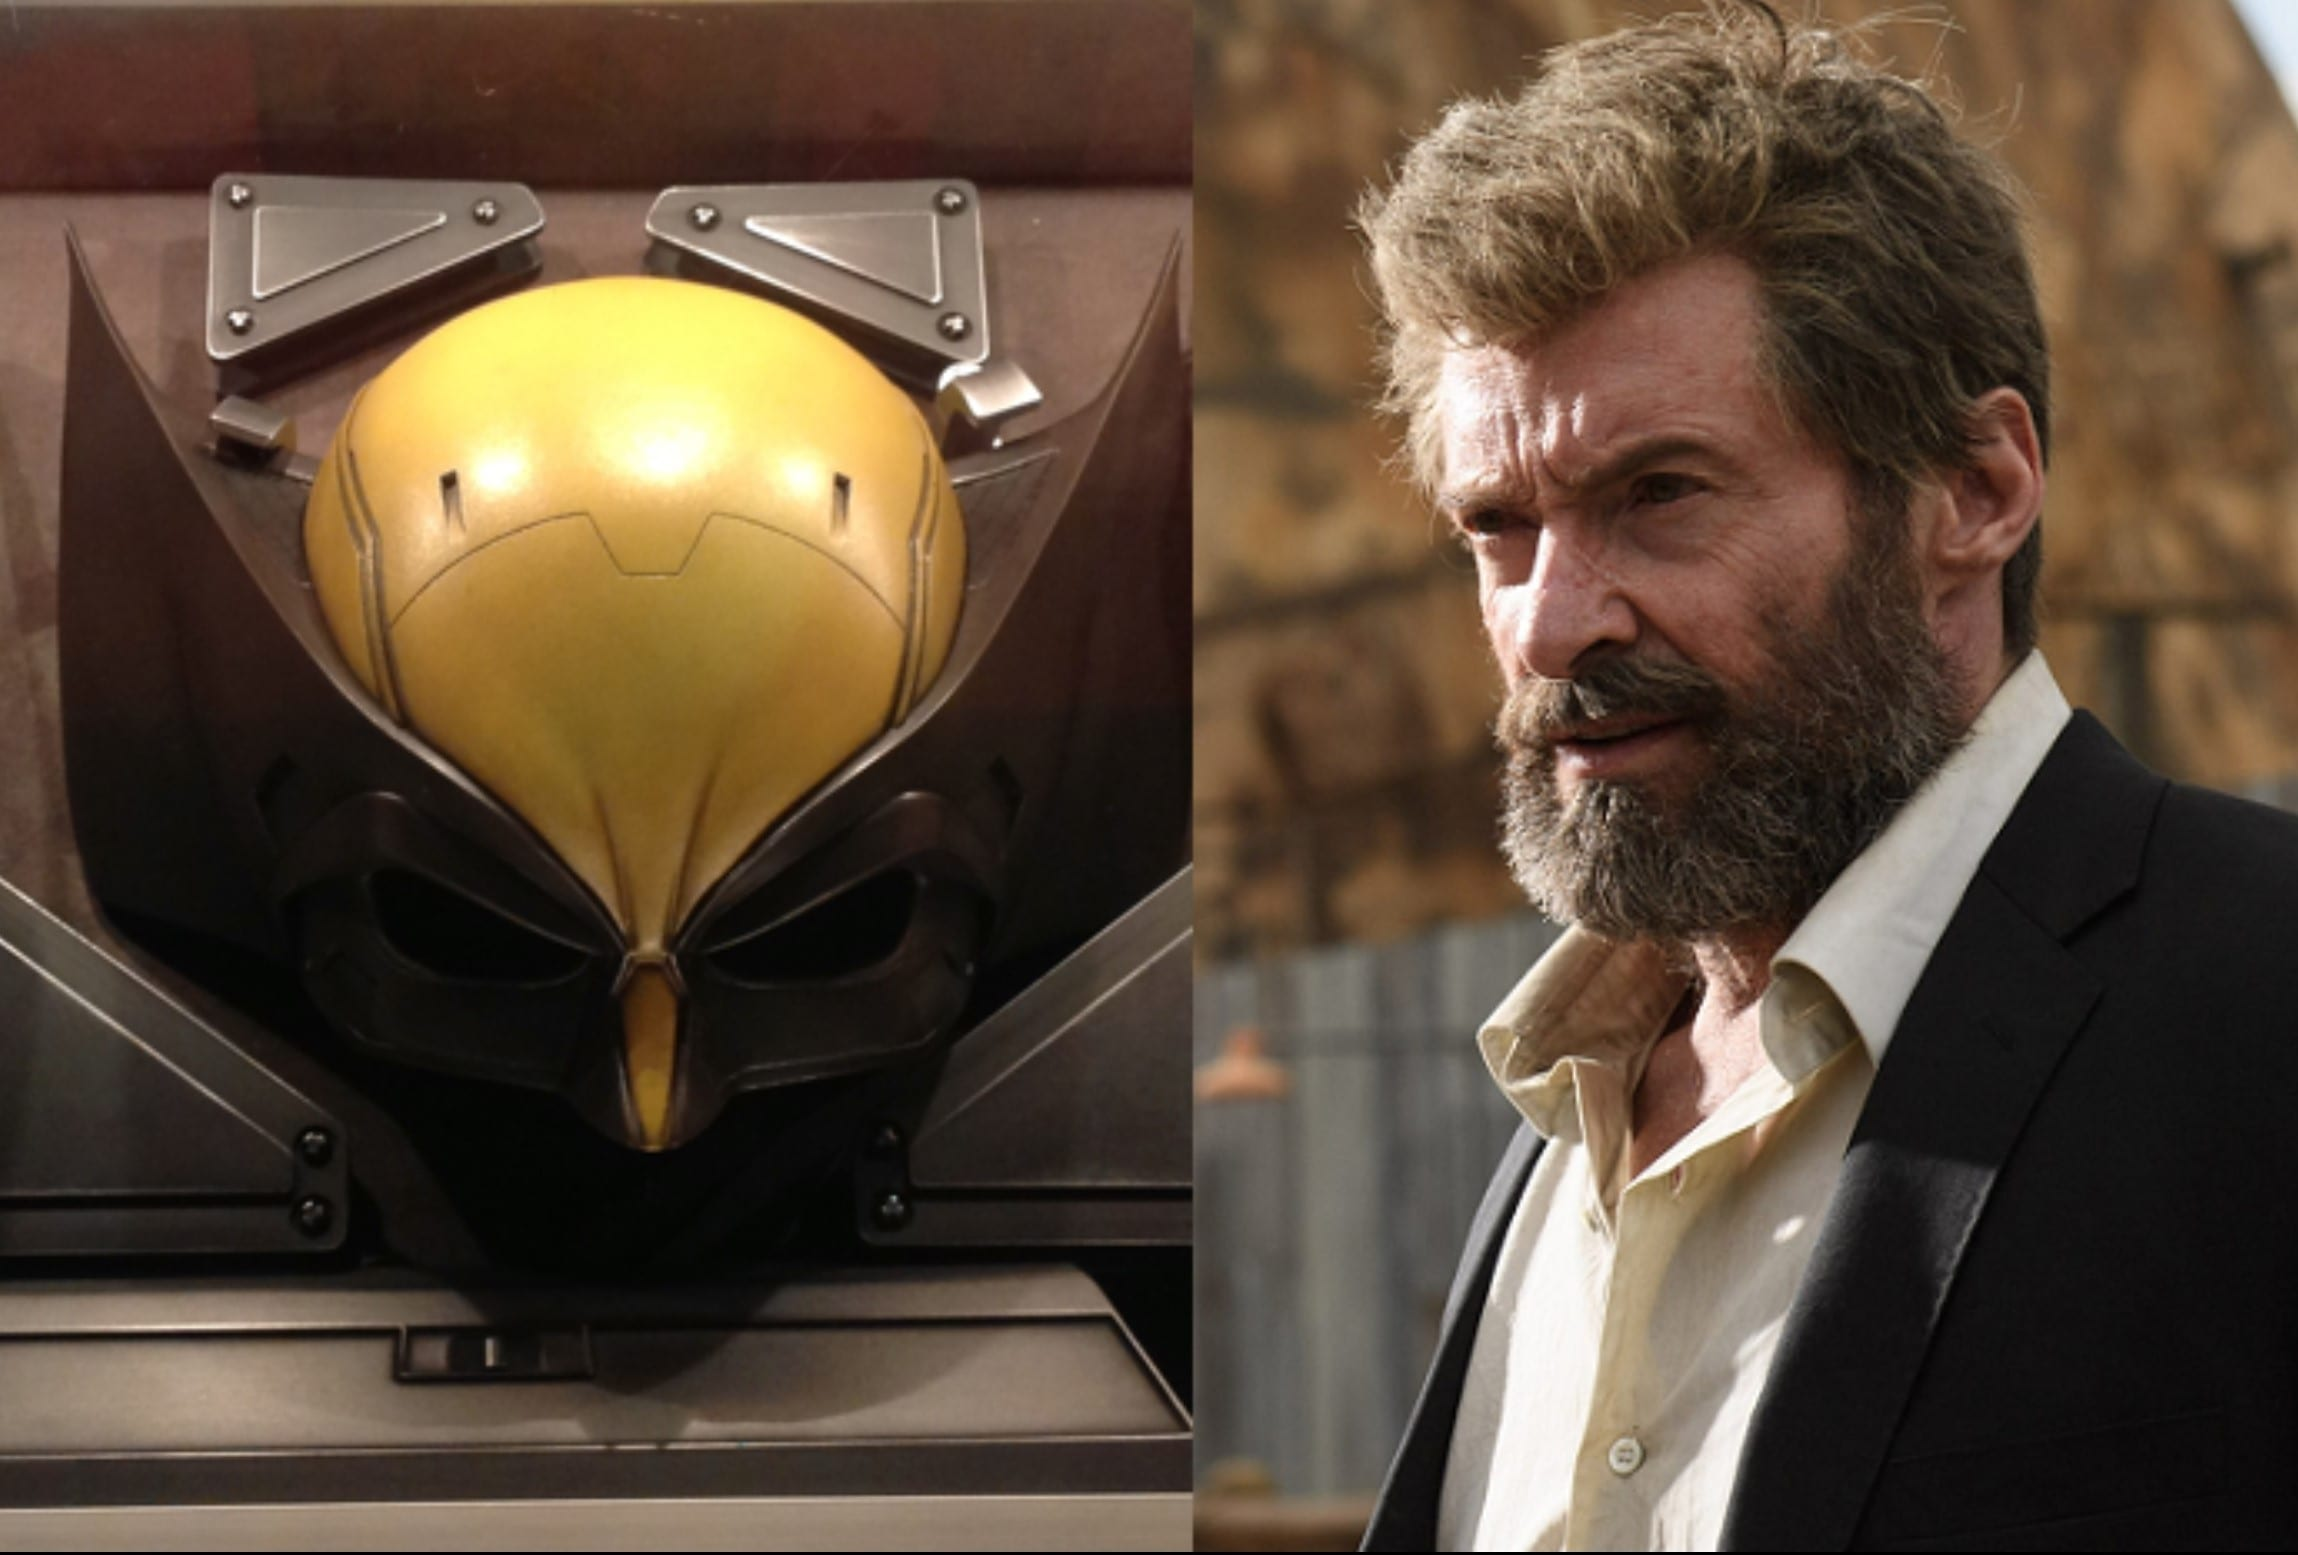 Logan director says Hugh Jackman never wore comic book accurate costume from The Wolverine